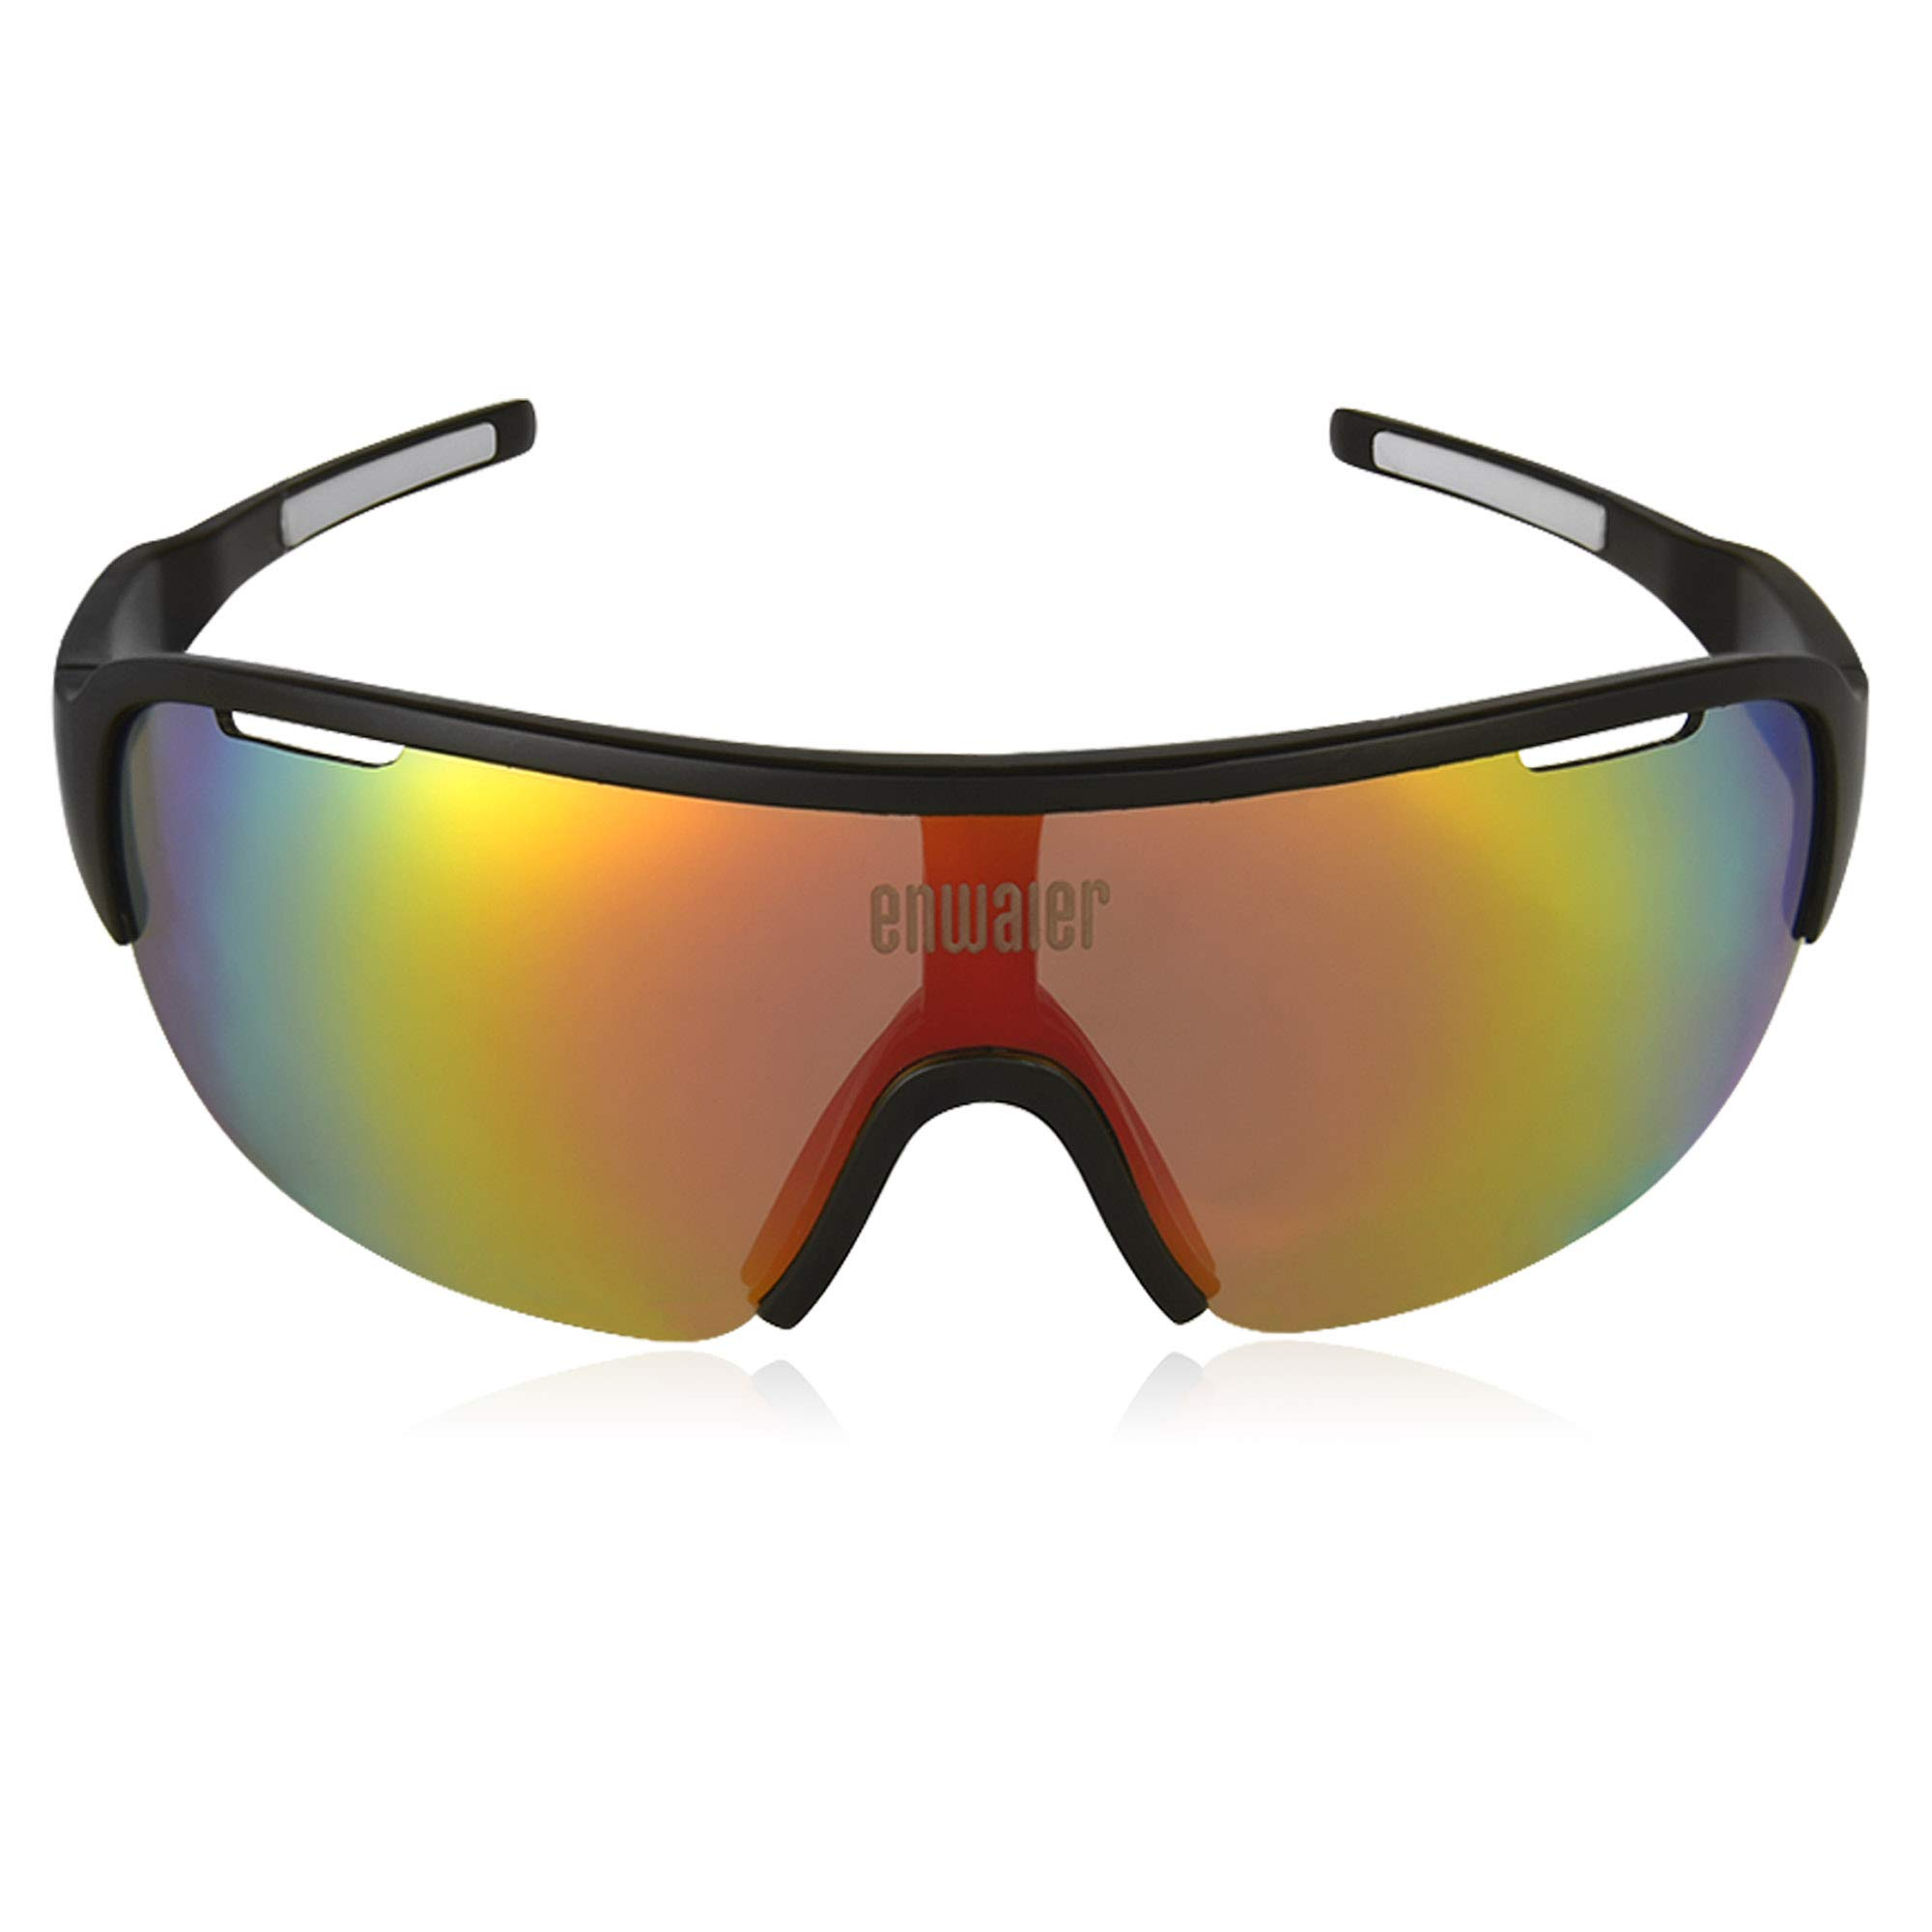 ENWAIER Polarized Sport Sunglasses for Men and Women with 3 Interchangeable Lenses Design Glasses for Cycling Running Driving Fishing Climbing with UV400 Protection TR90 Durable Frame